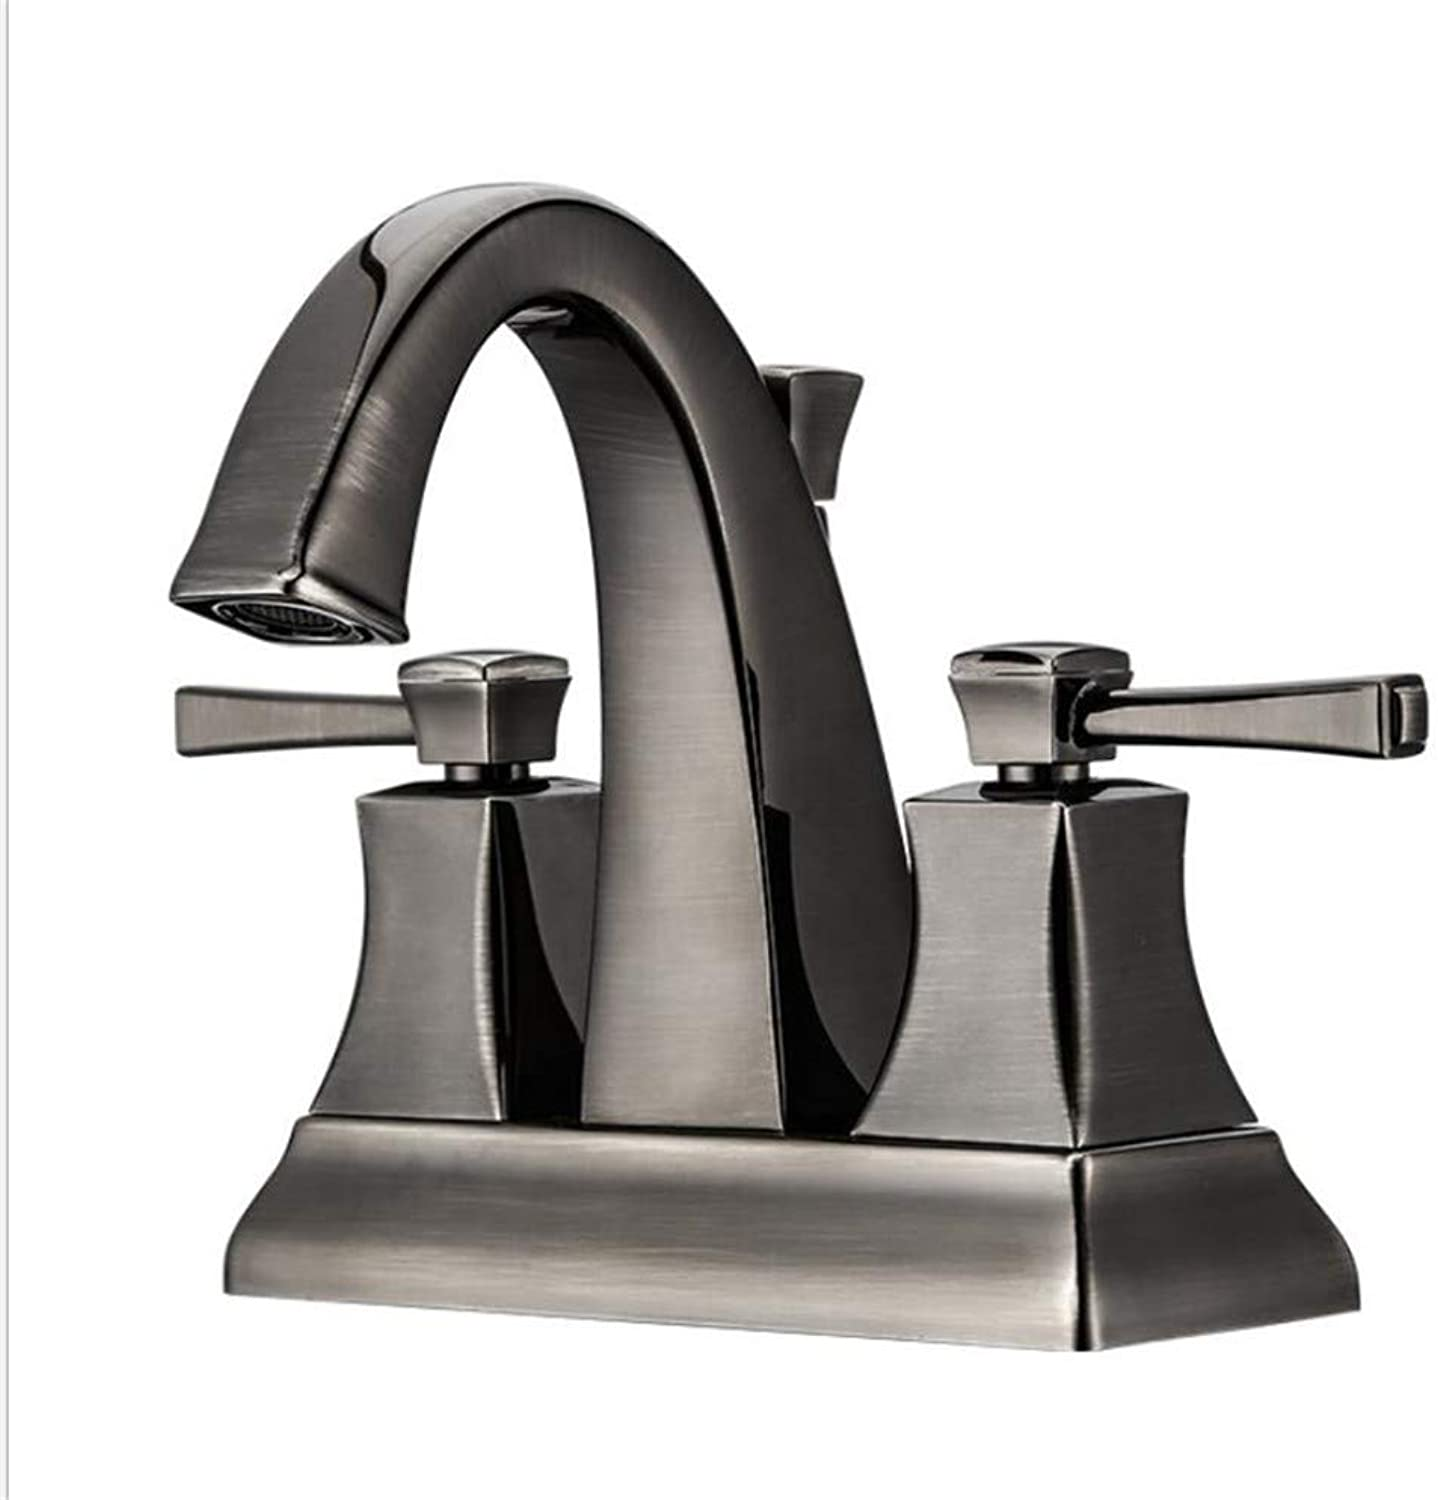 Bathroom Sink Basin Lever Mixer Tap Copper-Faced Basin Faucet Mixes Three-Hole Cold and Hot Washbasin with Water